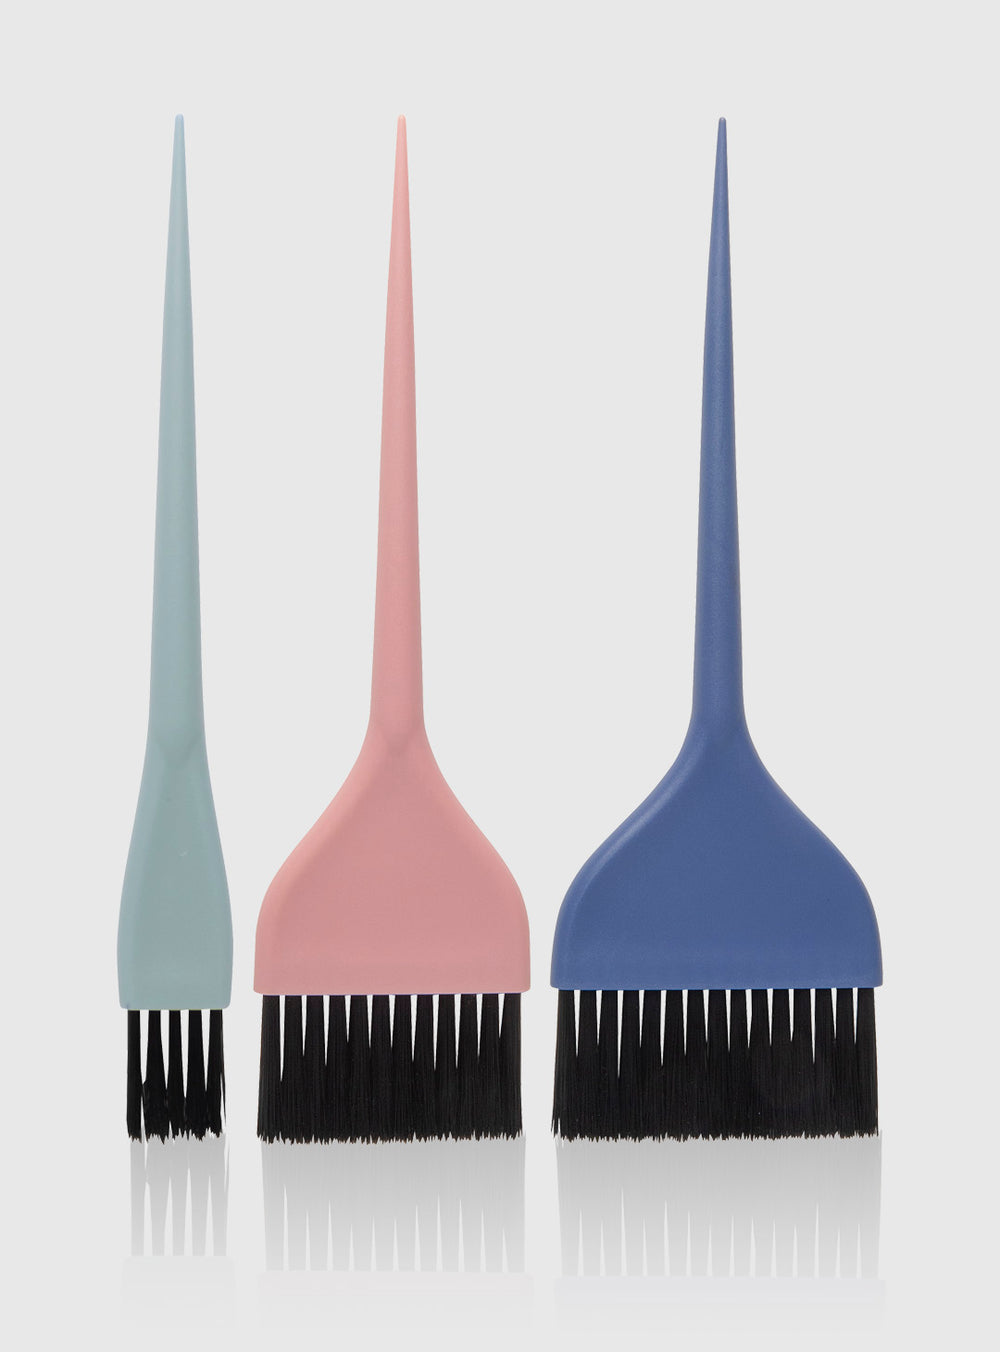 Fromm Pro Professional Salon Pastel Soft Black Bristle Brush 3 Pack Set For Hair Color Application